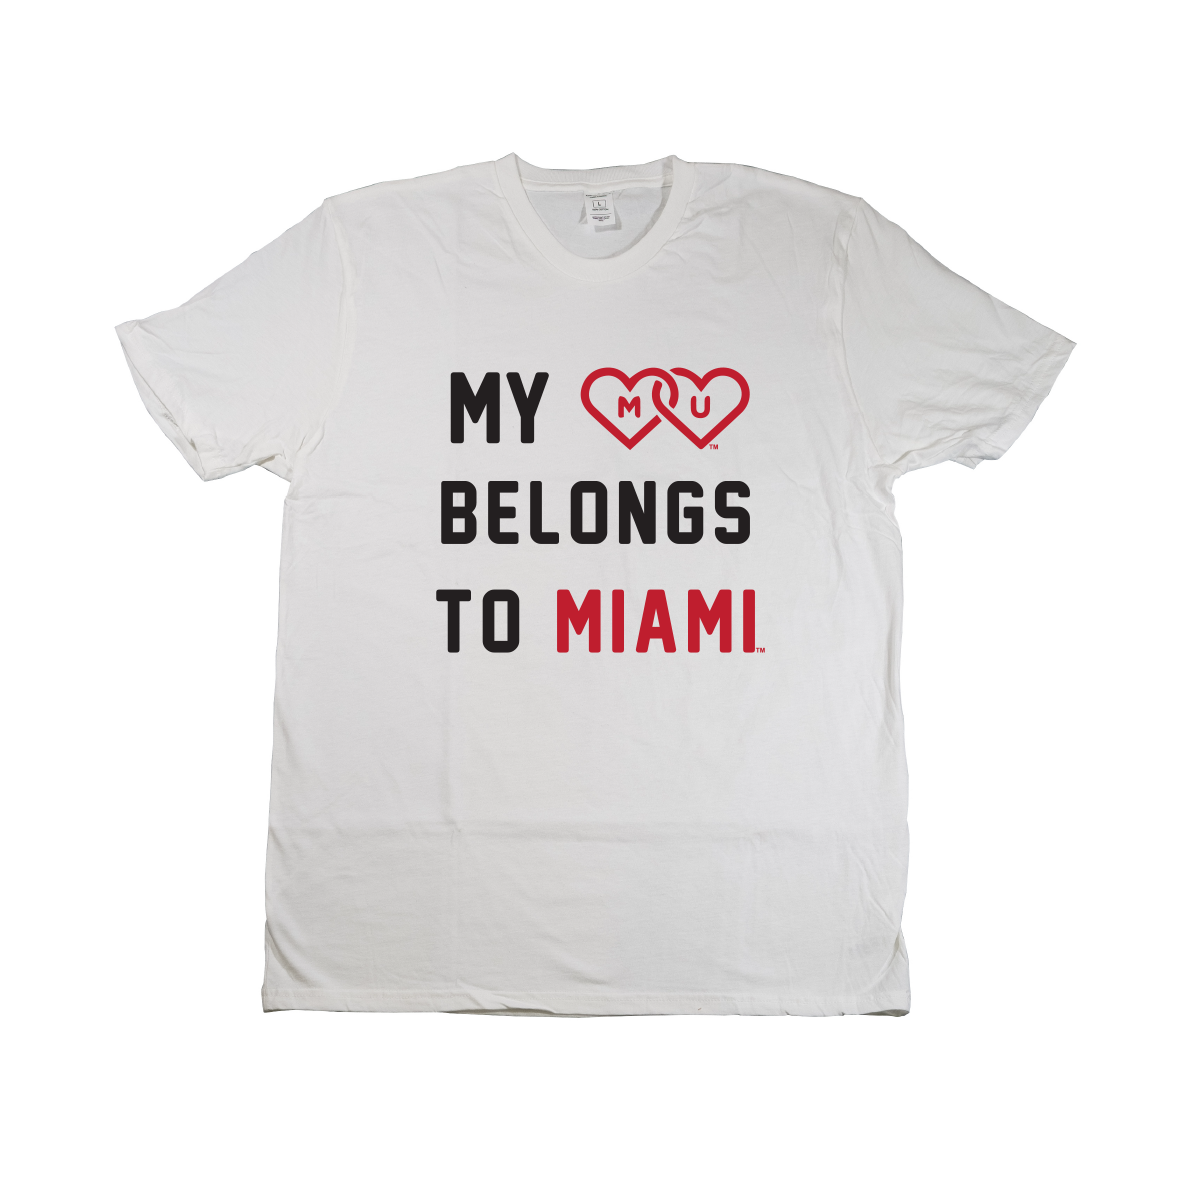 MIAMI UNIVERSITY Redhawks Heart Belongs To Crewneck Tee